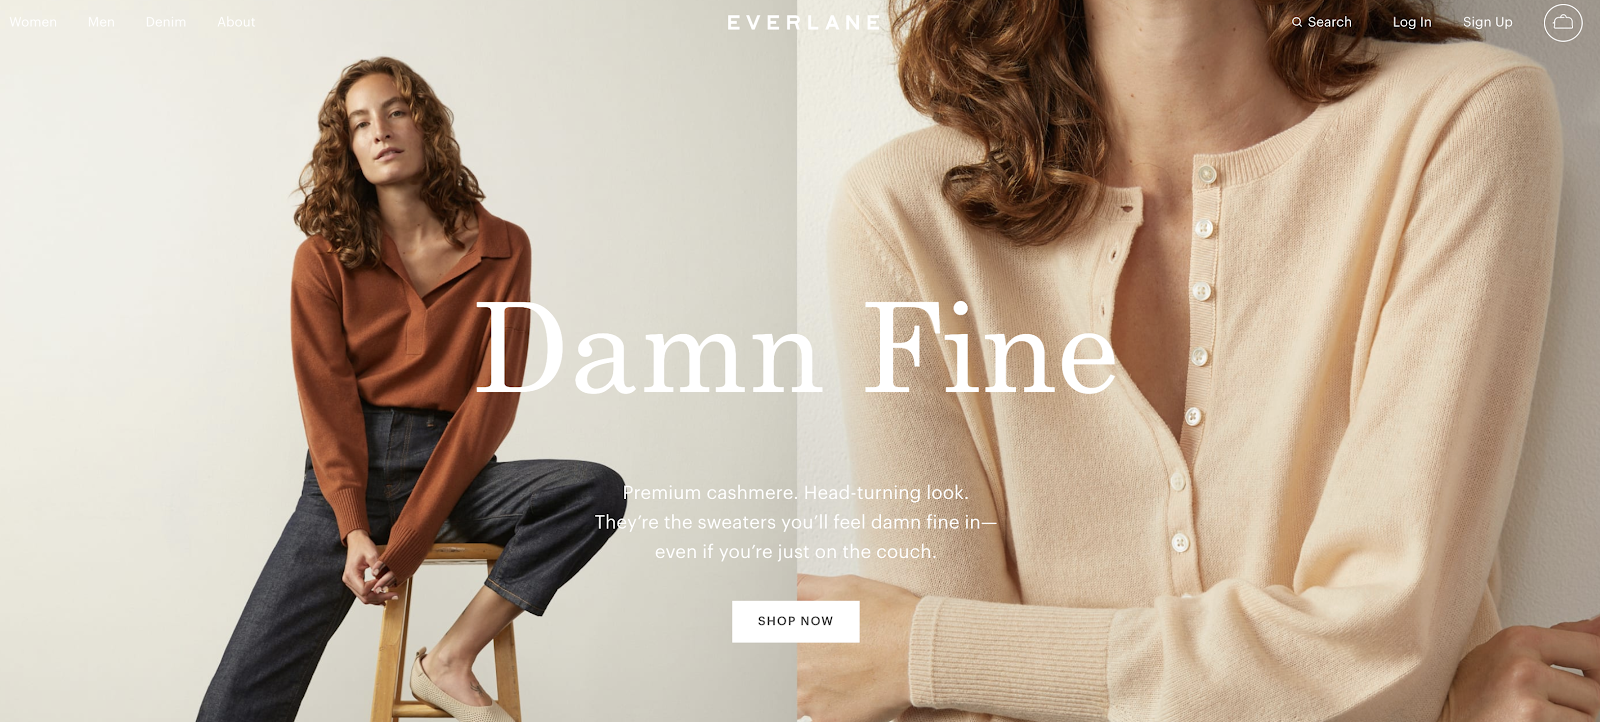 Everlane eCommerce Website Example (Screenshot of Homepage)